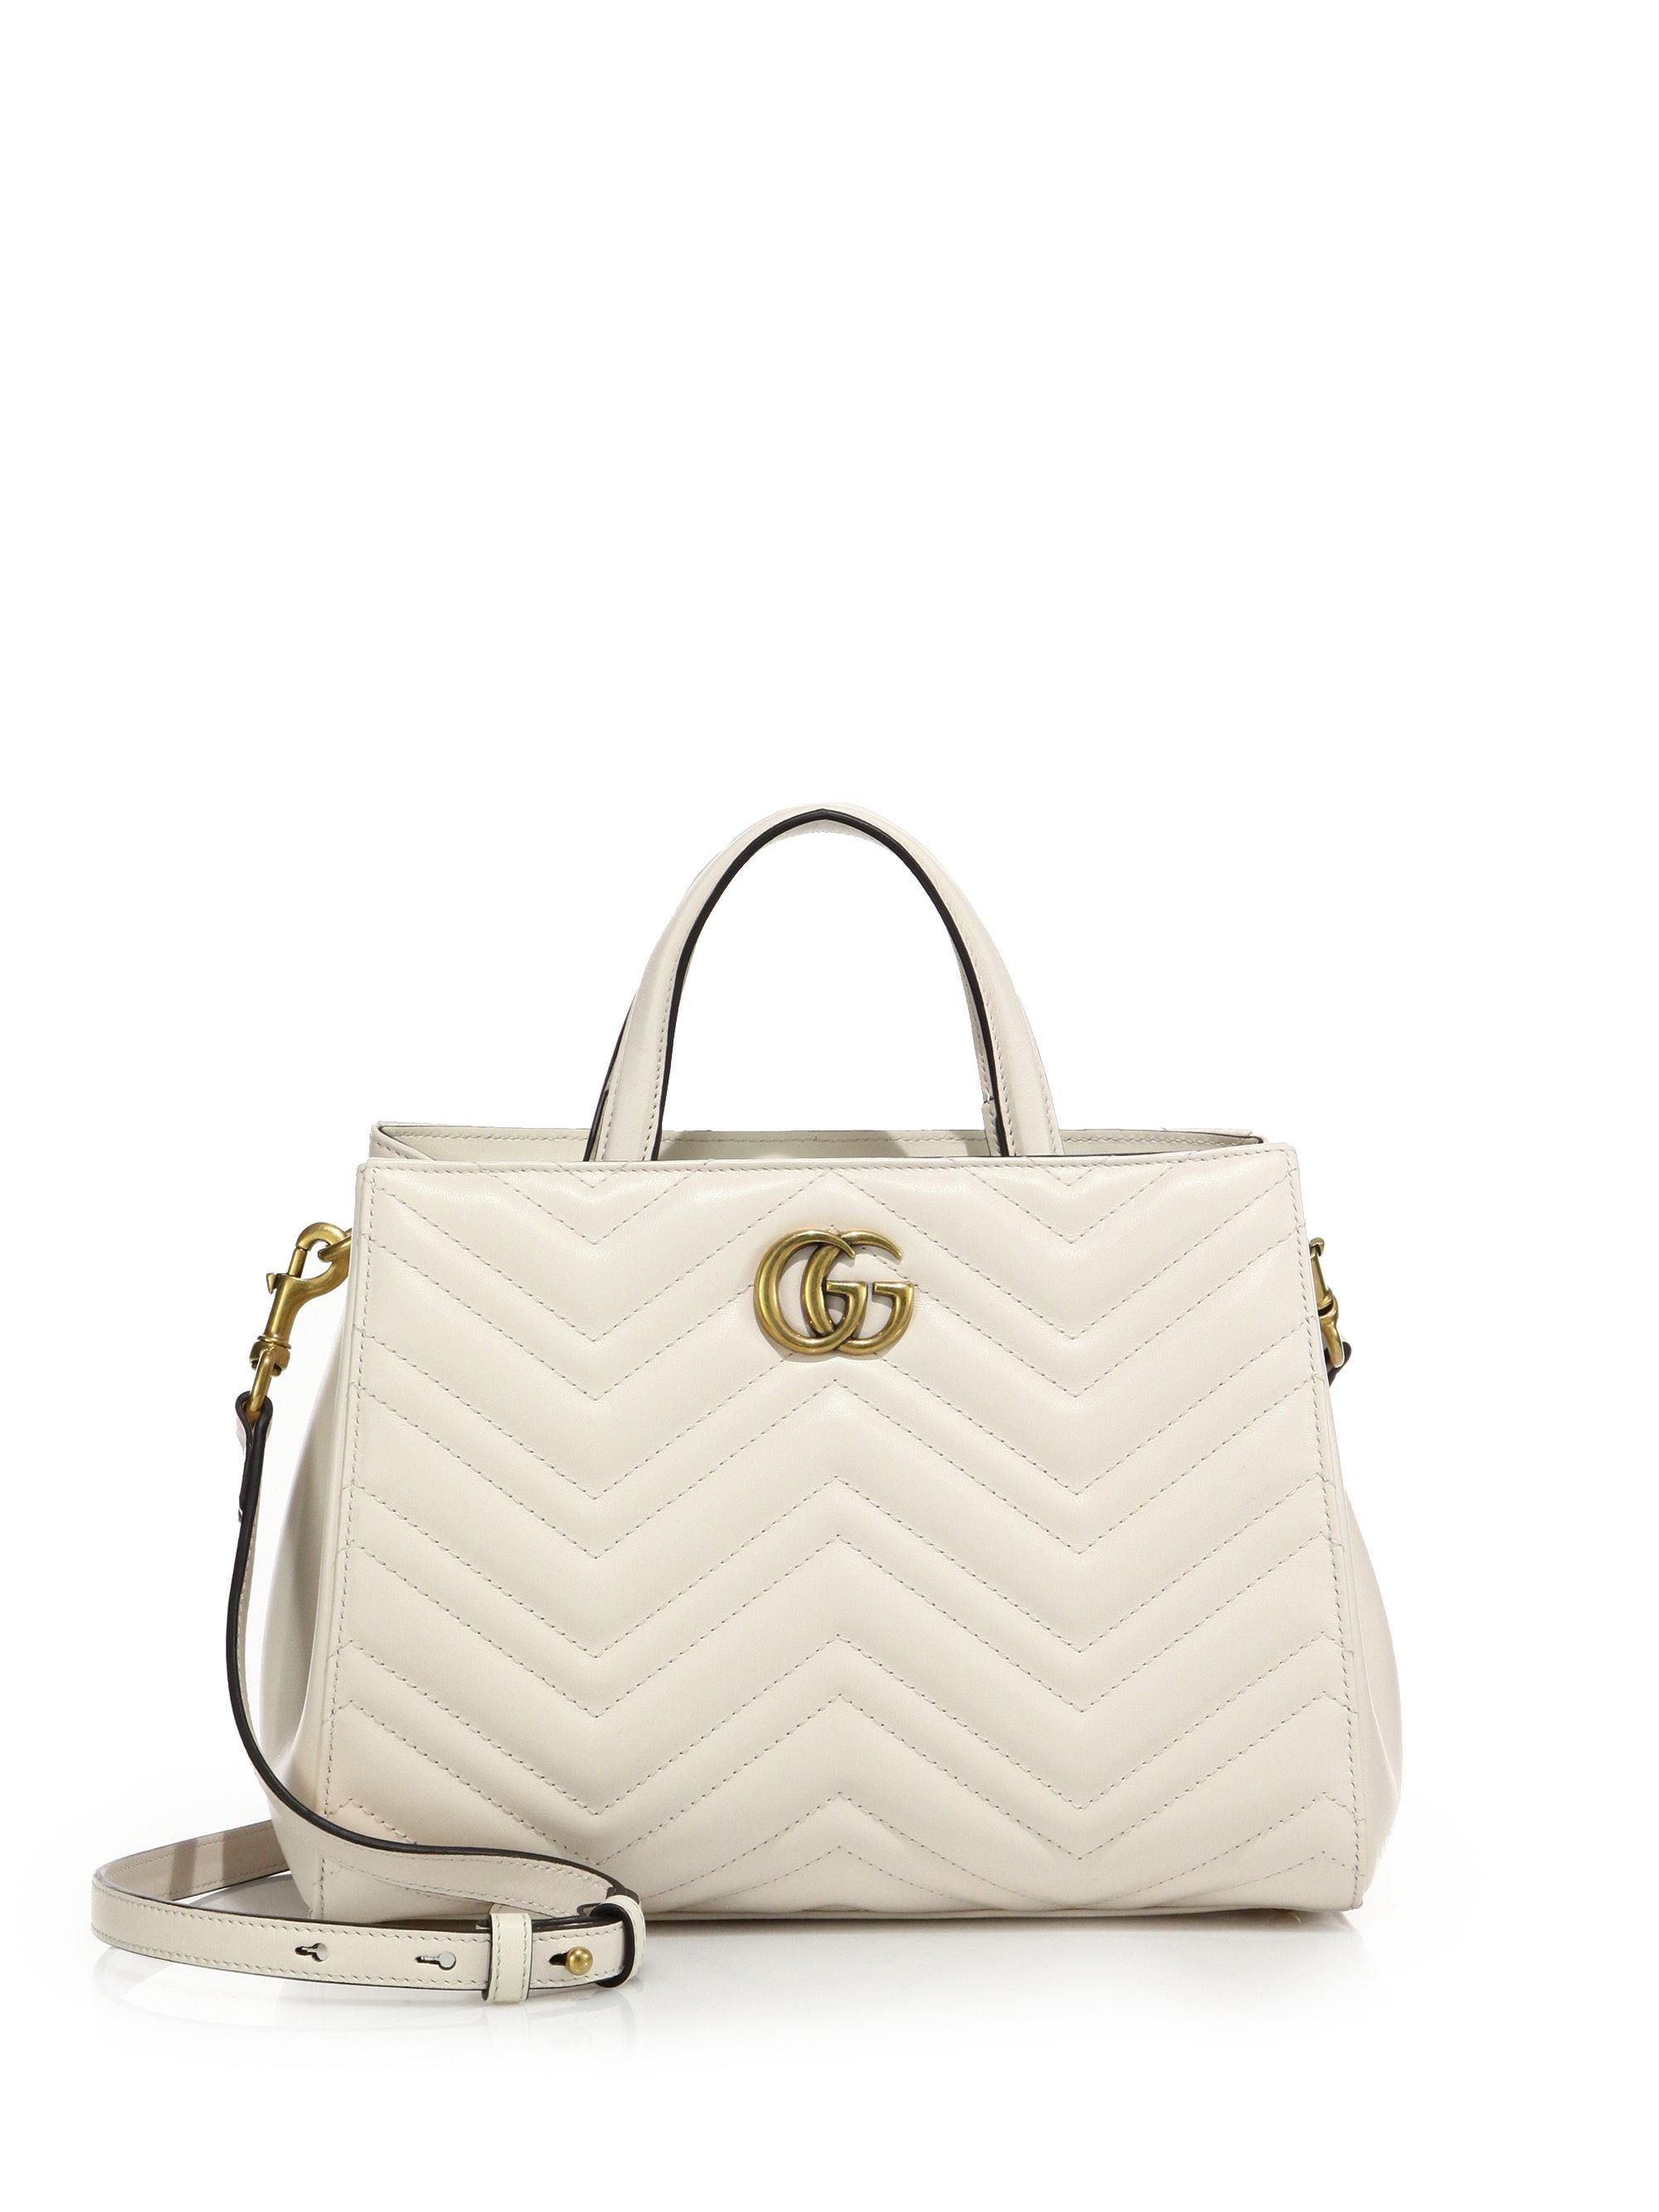 eb2d68896db5 Gucci Marmont Bag Saks Fifth | Stanford Center for Opportunity ...